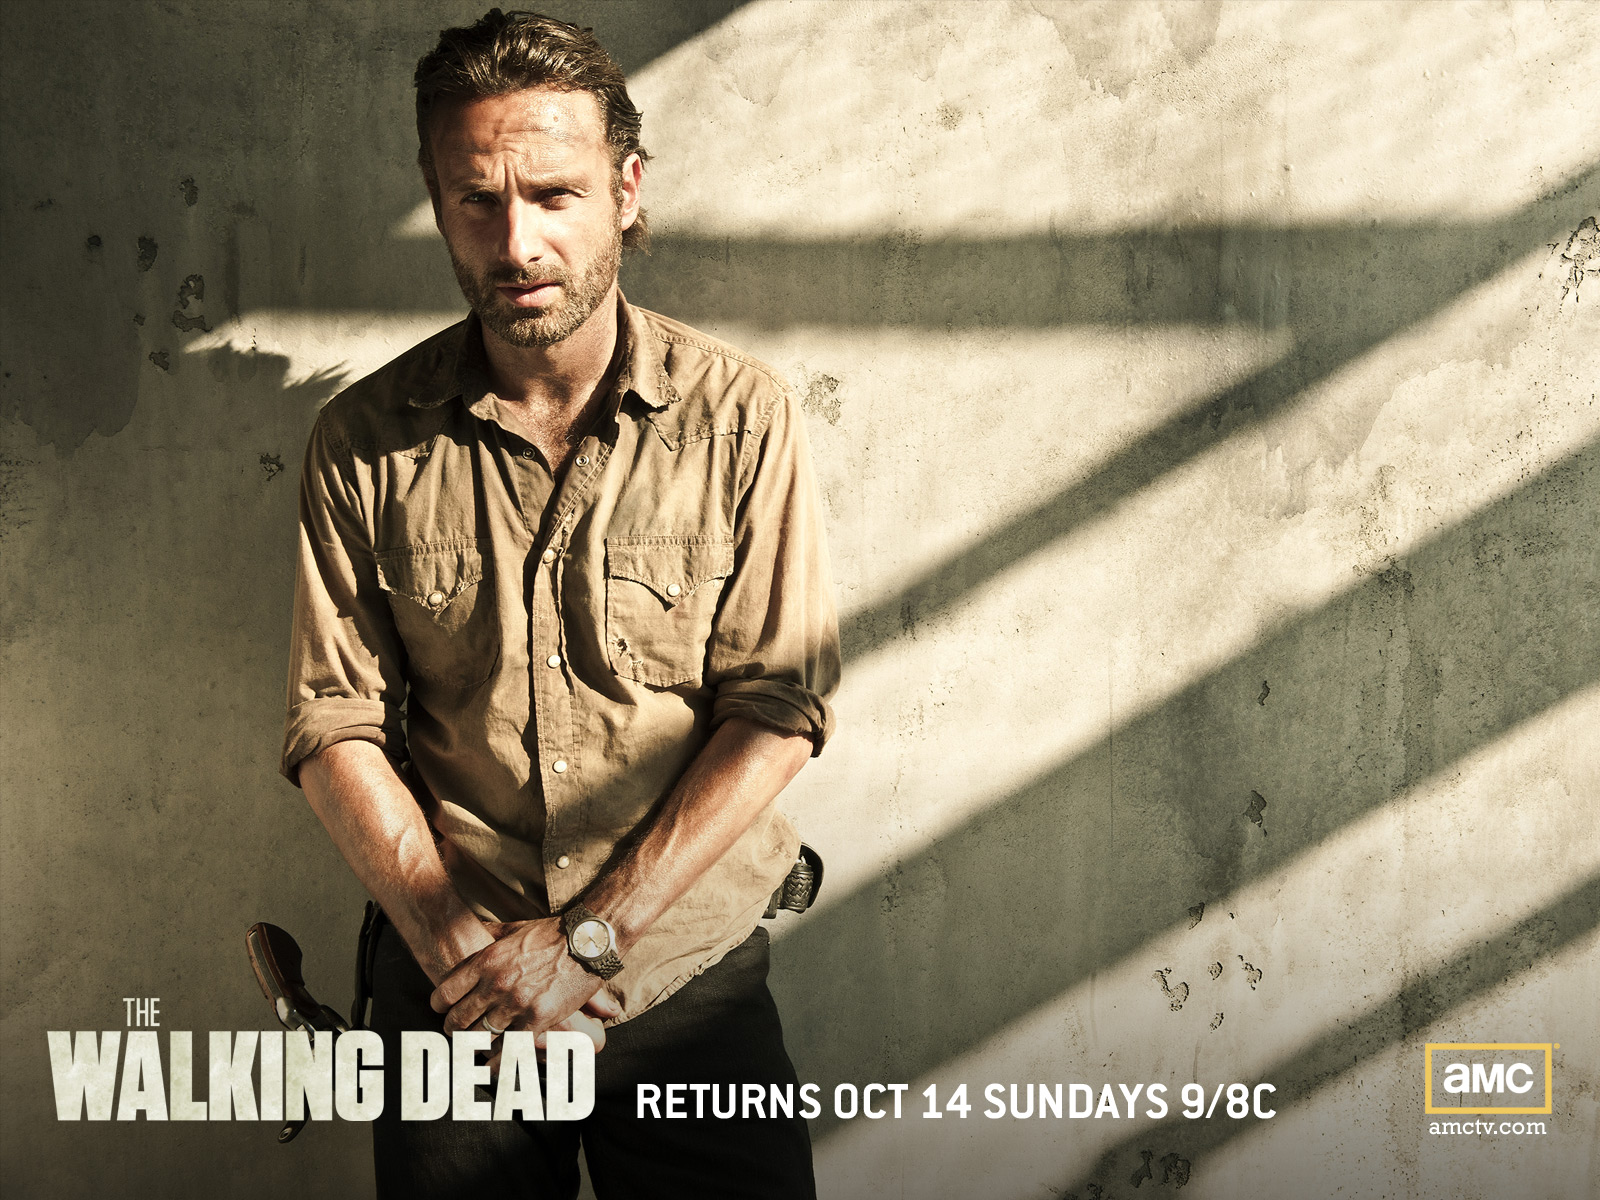 The-Walking-Dead-the-walking-dead-32297738-1600-1200.jpg